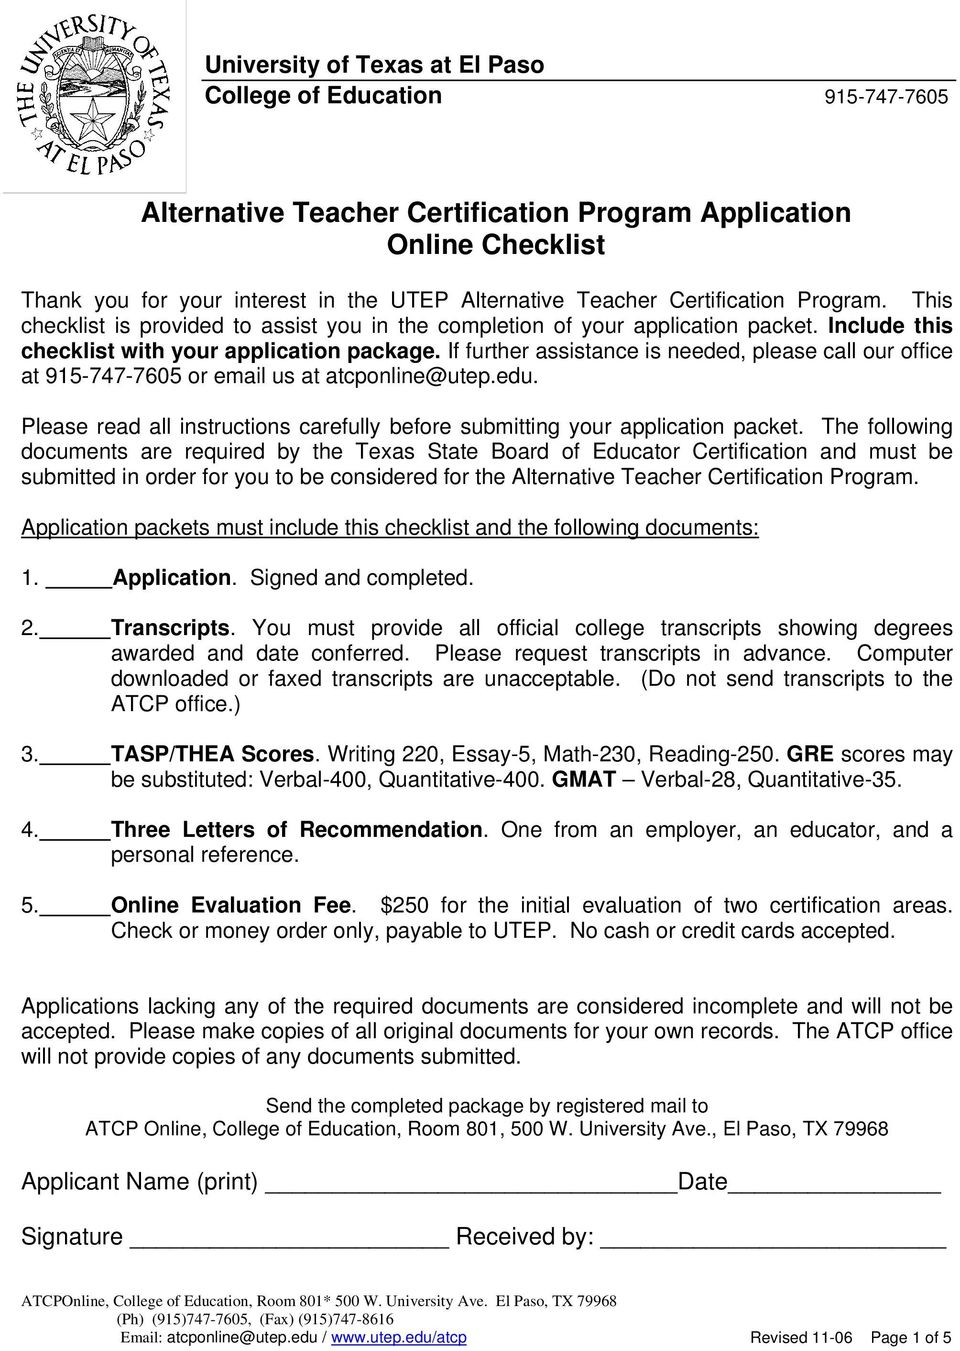 If further assistance is needed, please call our office at 915-747-7605 or email us at atcponline@utep.edu. Please read all instructions carefully before submitting your application packet.